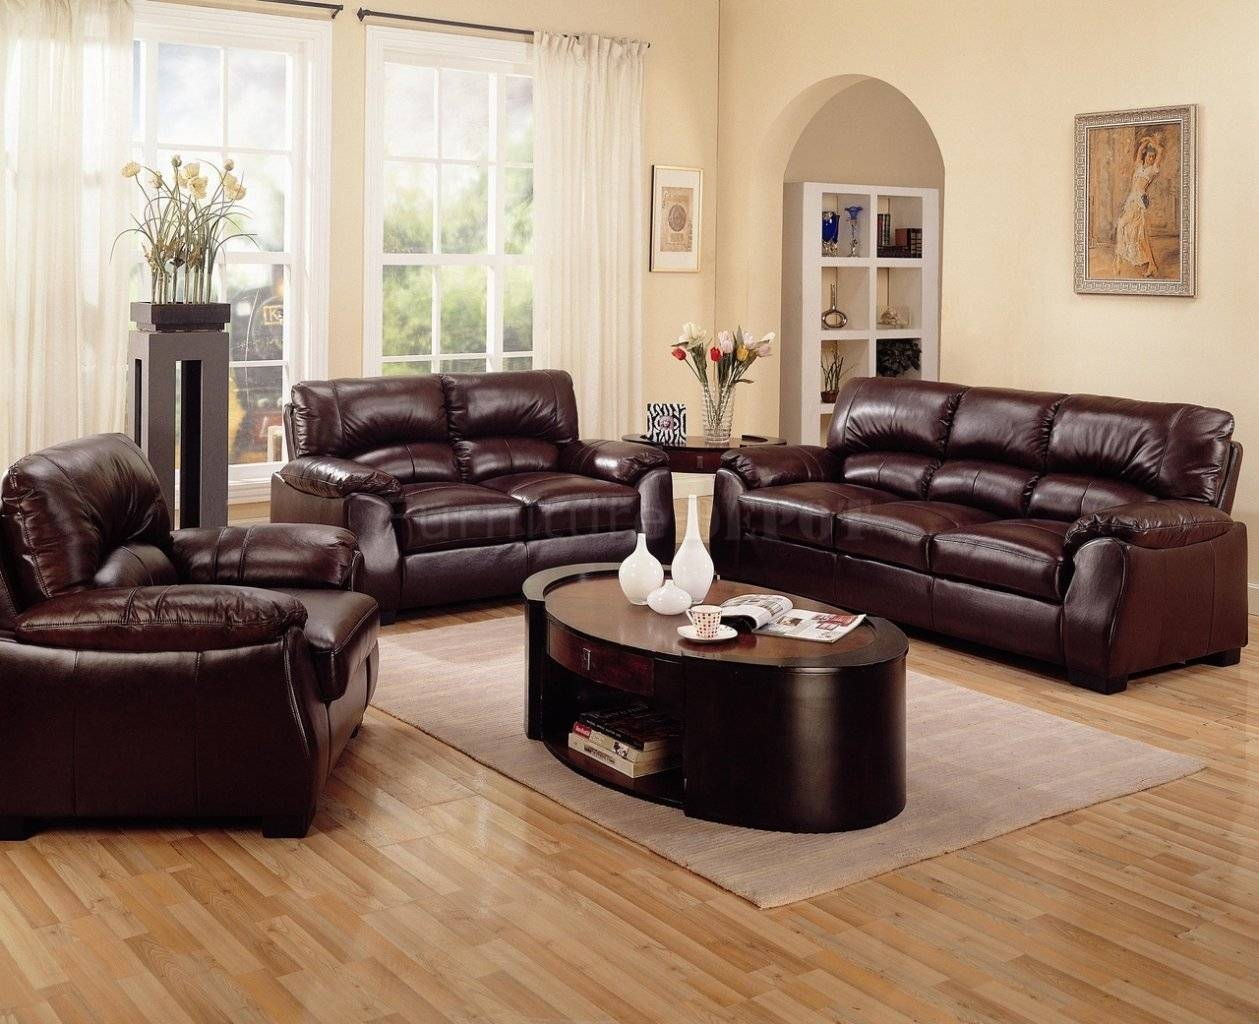 Decorate Living Room Brown Leather Sofa | Centerfieldbar regarding Living Room With Brown Sofas (Image 6 of 15)